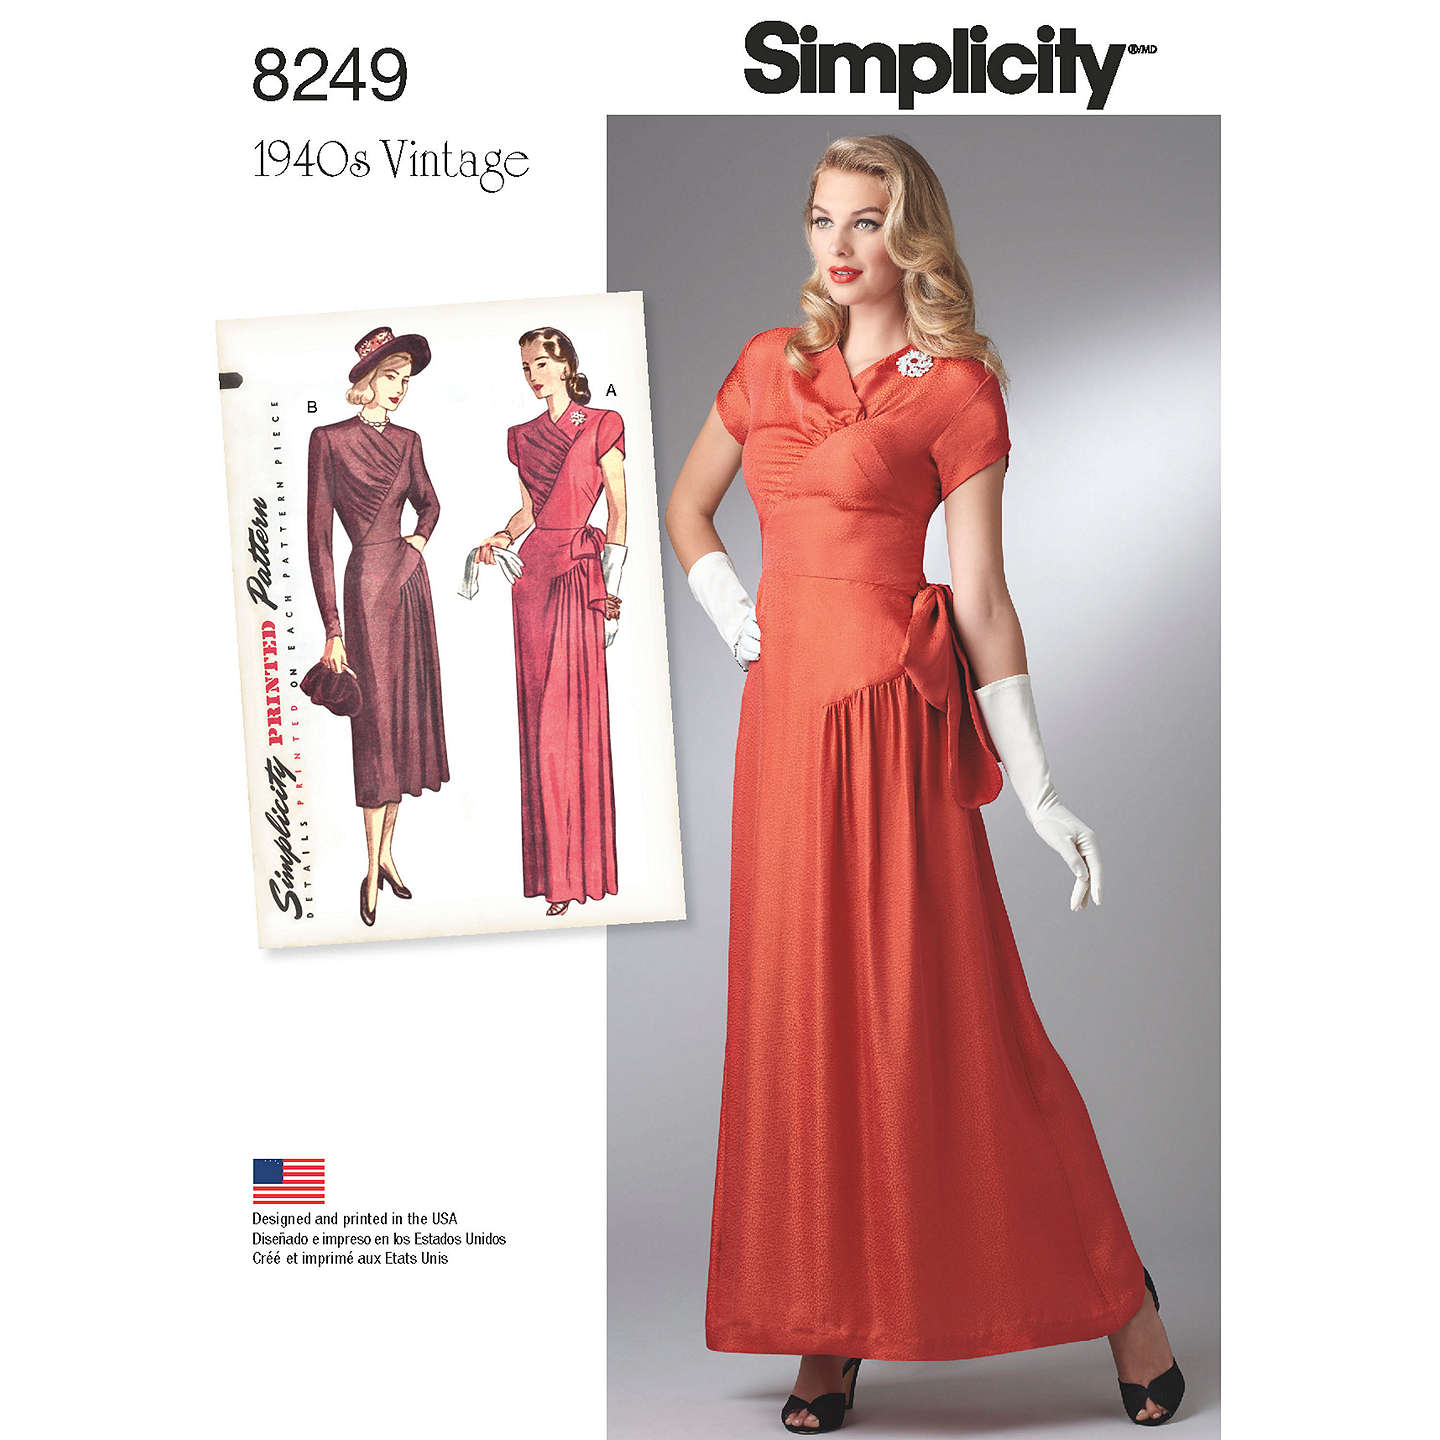 Simplicity Vintage Women\'s 1940s Gown and Dress Sewing Pattern, 8249 ...